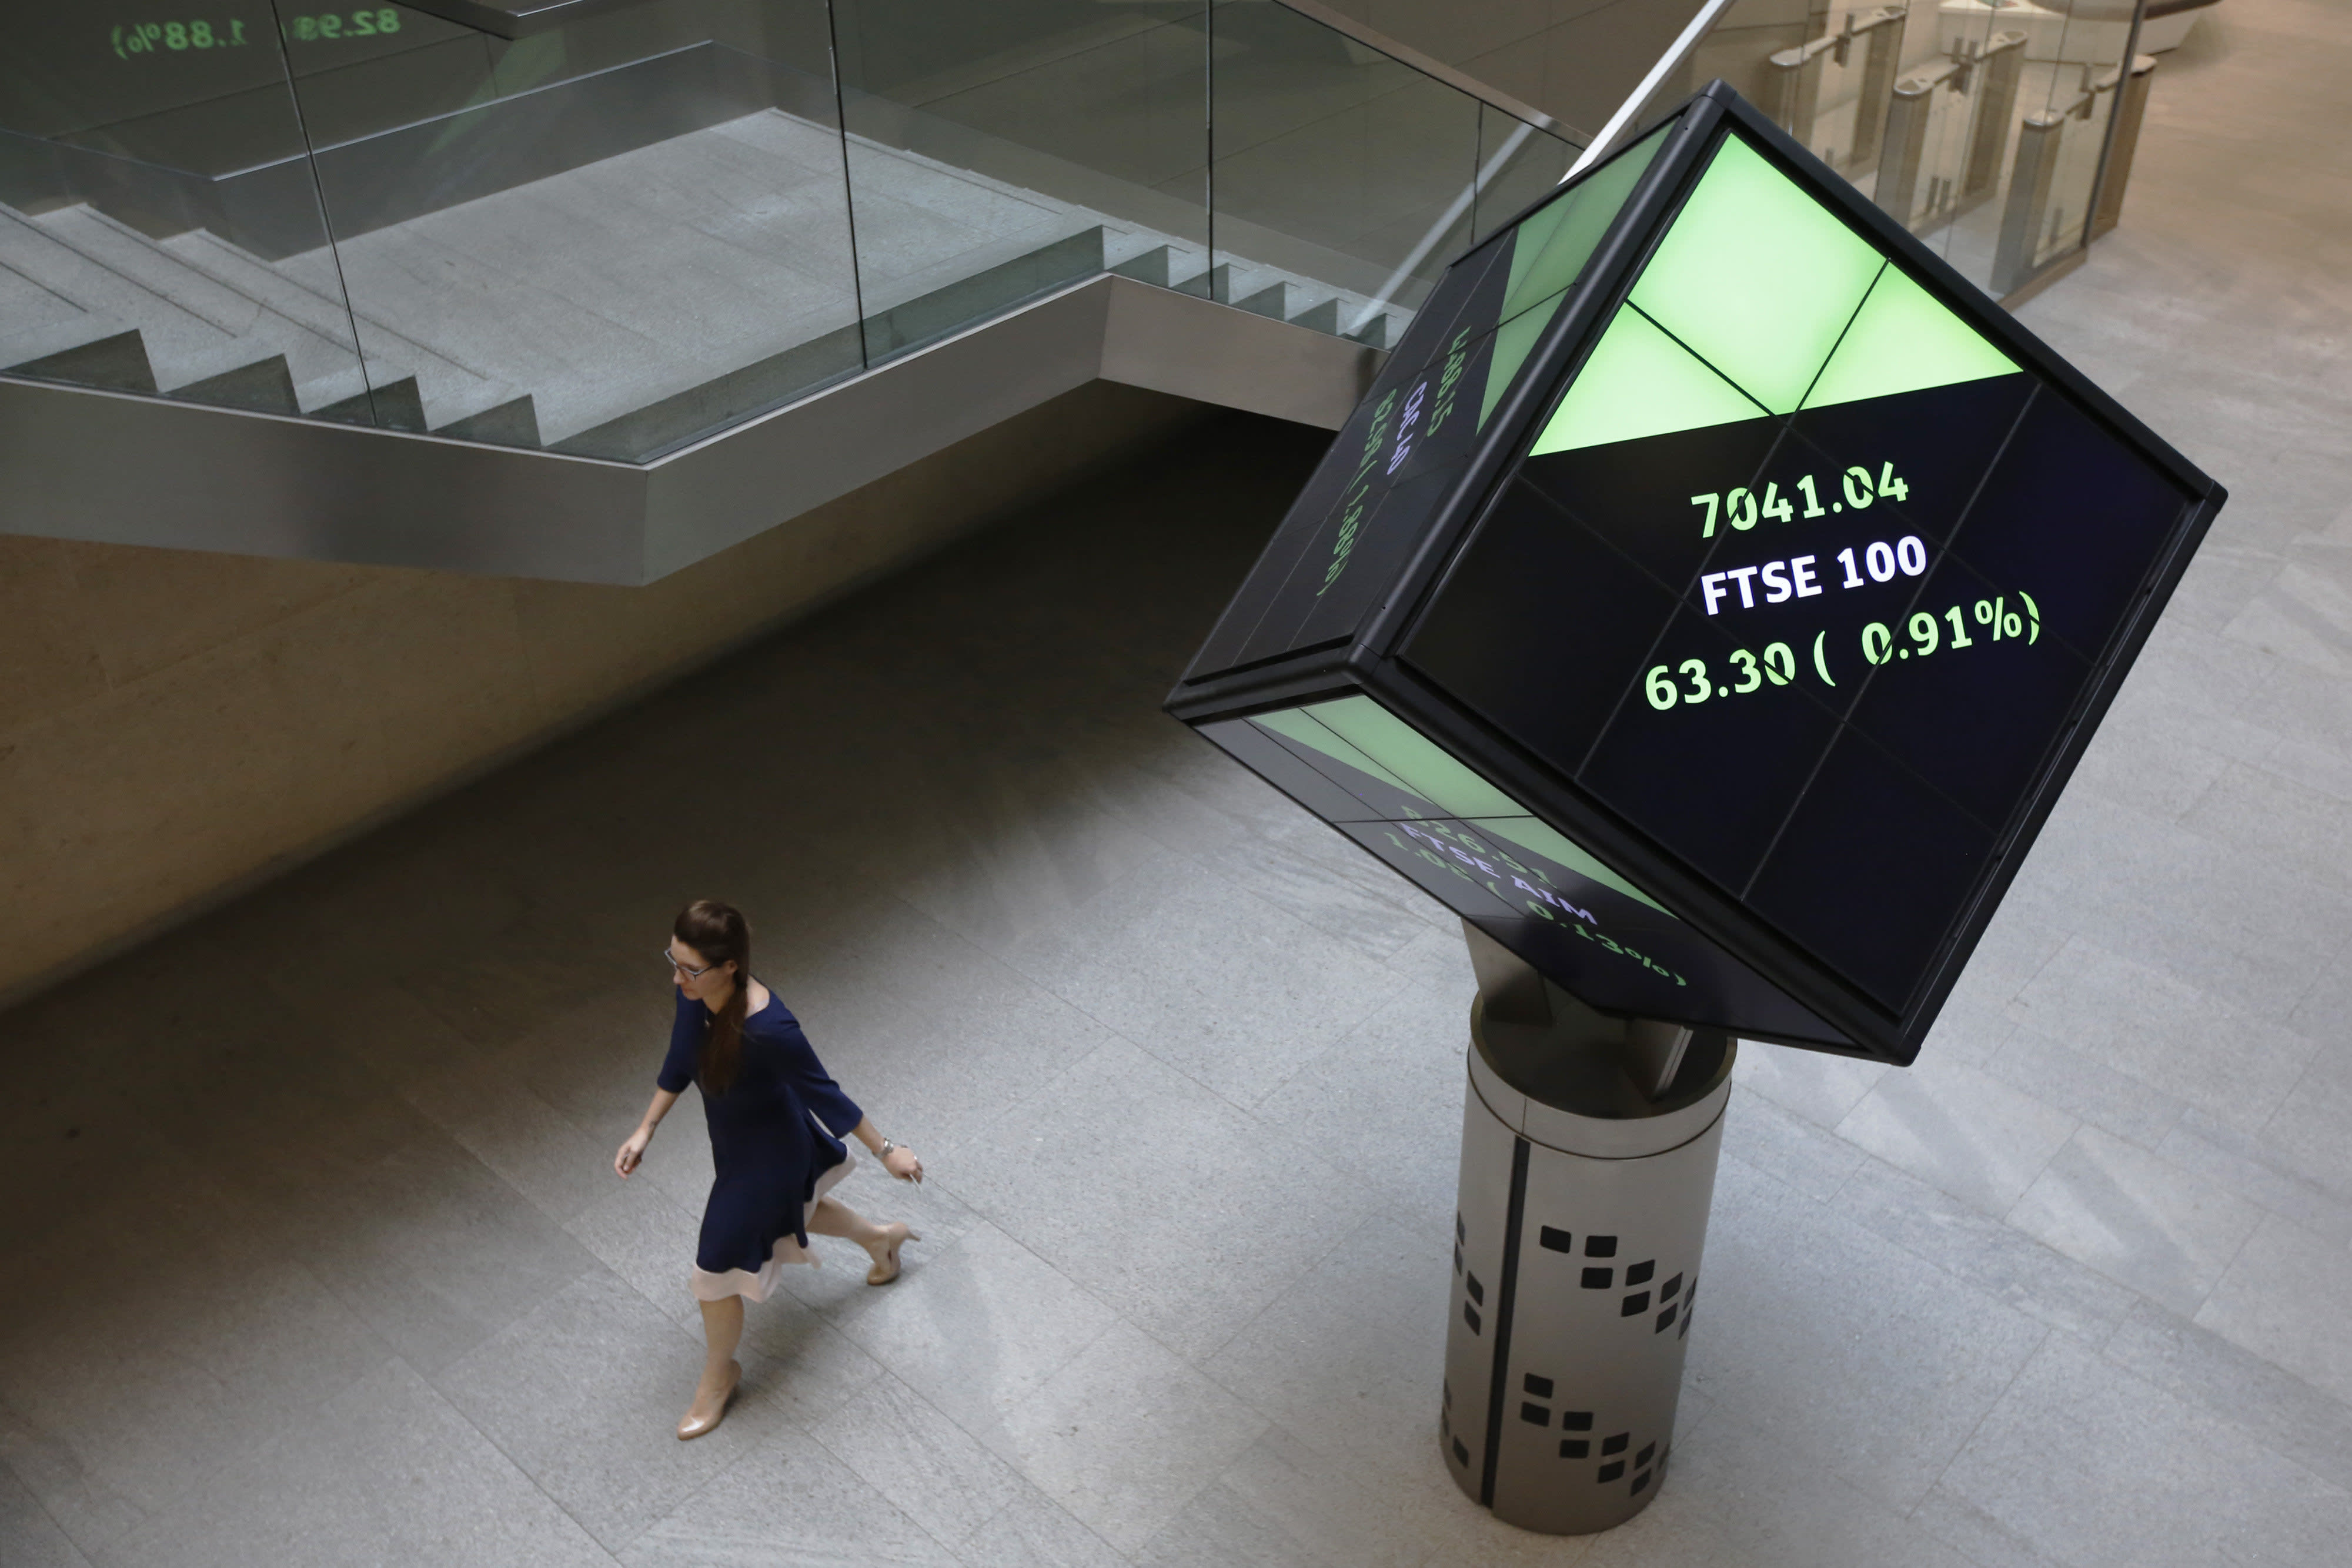 FTSE jumps in first trading day since Brexit deal